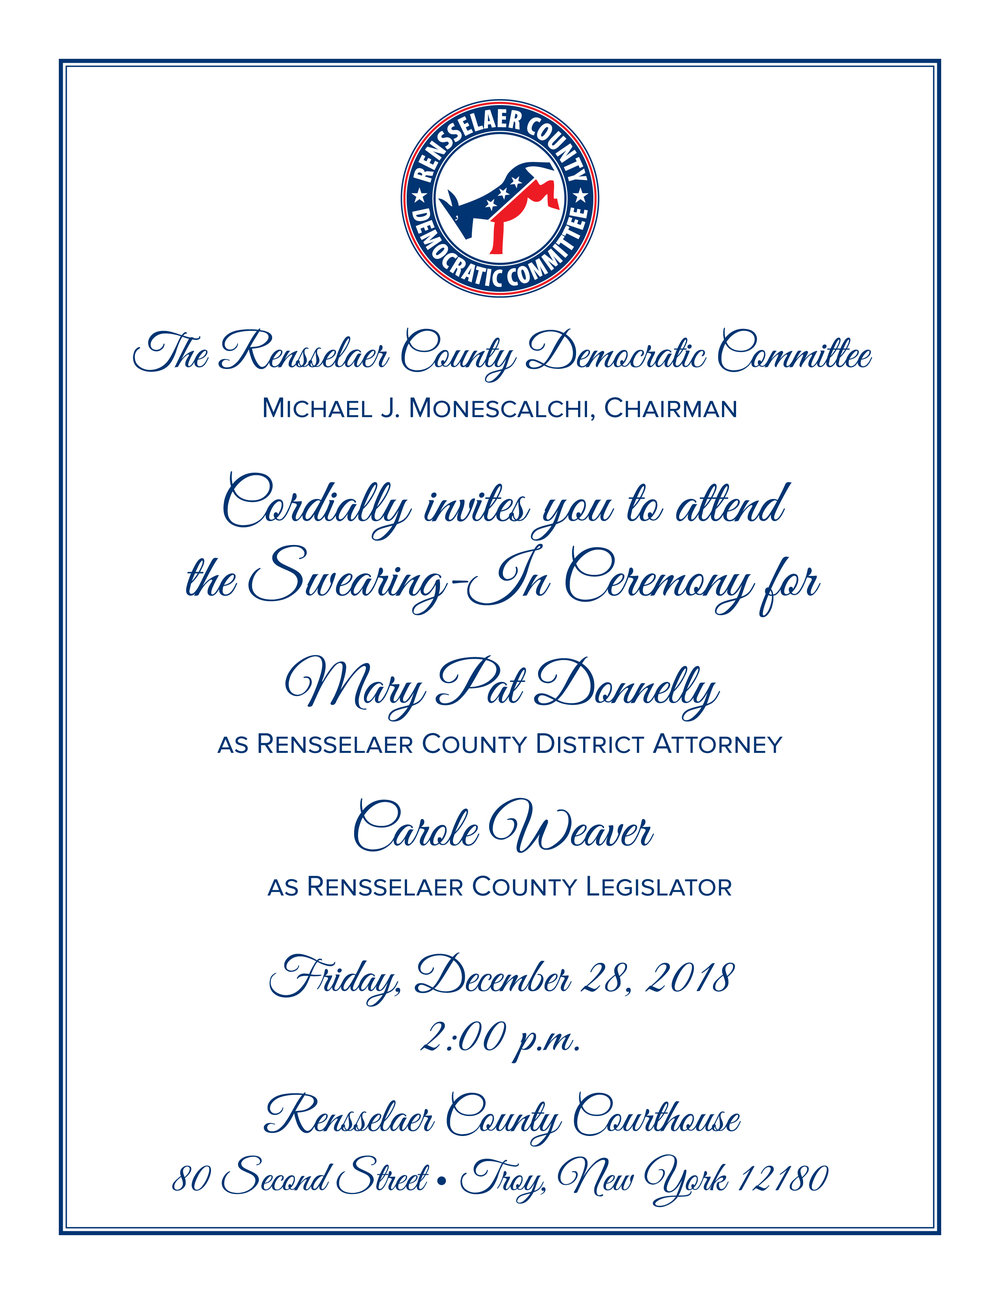 RCDC December 28 2018 Swearing-in Ceremony Invitation.jpg